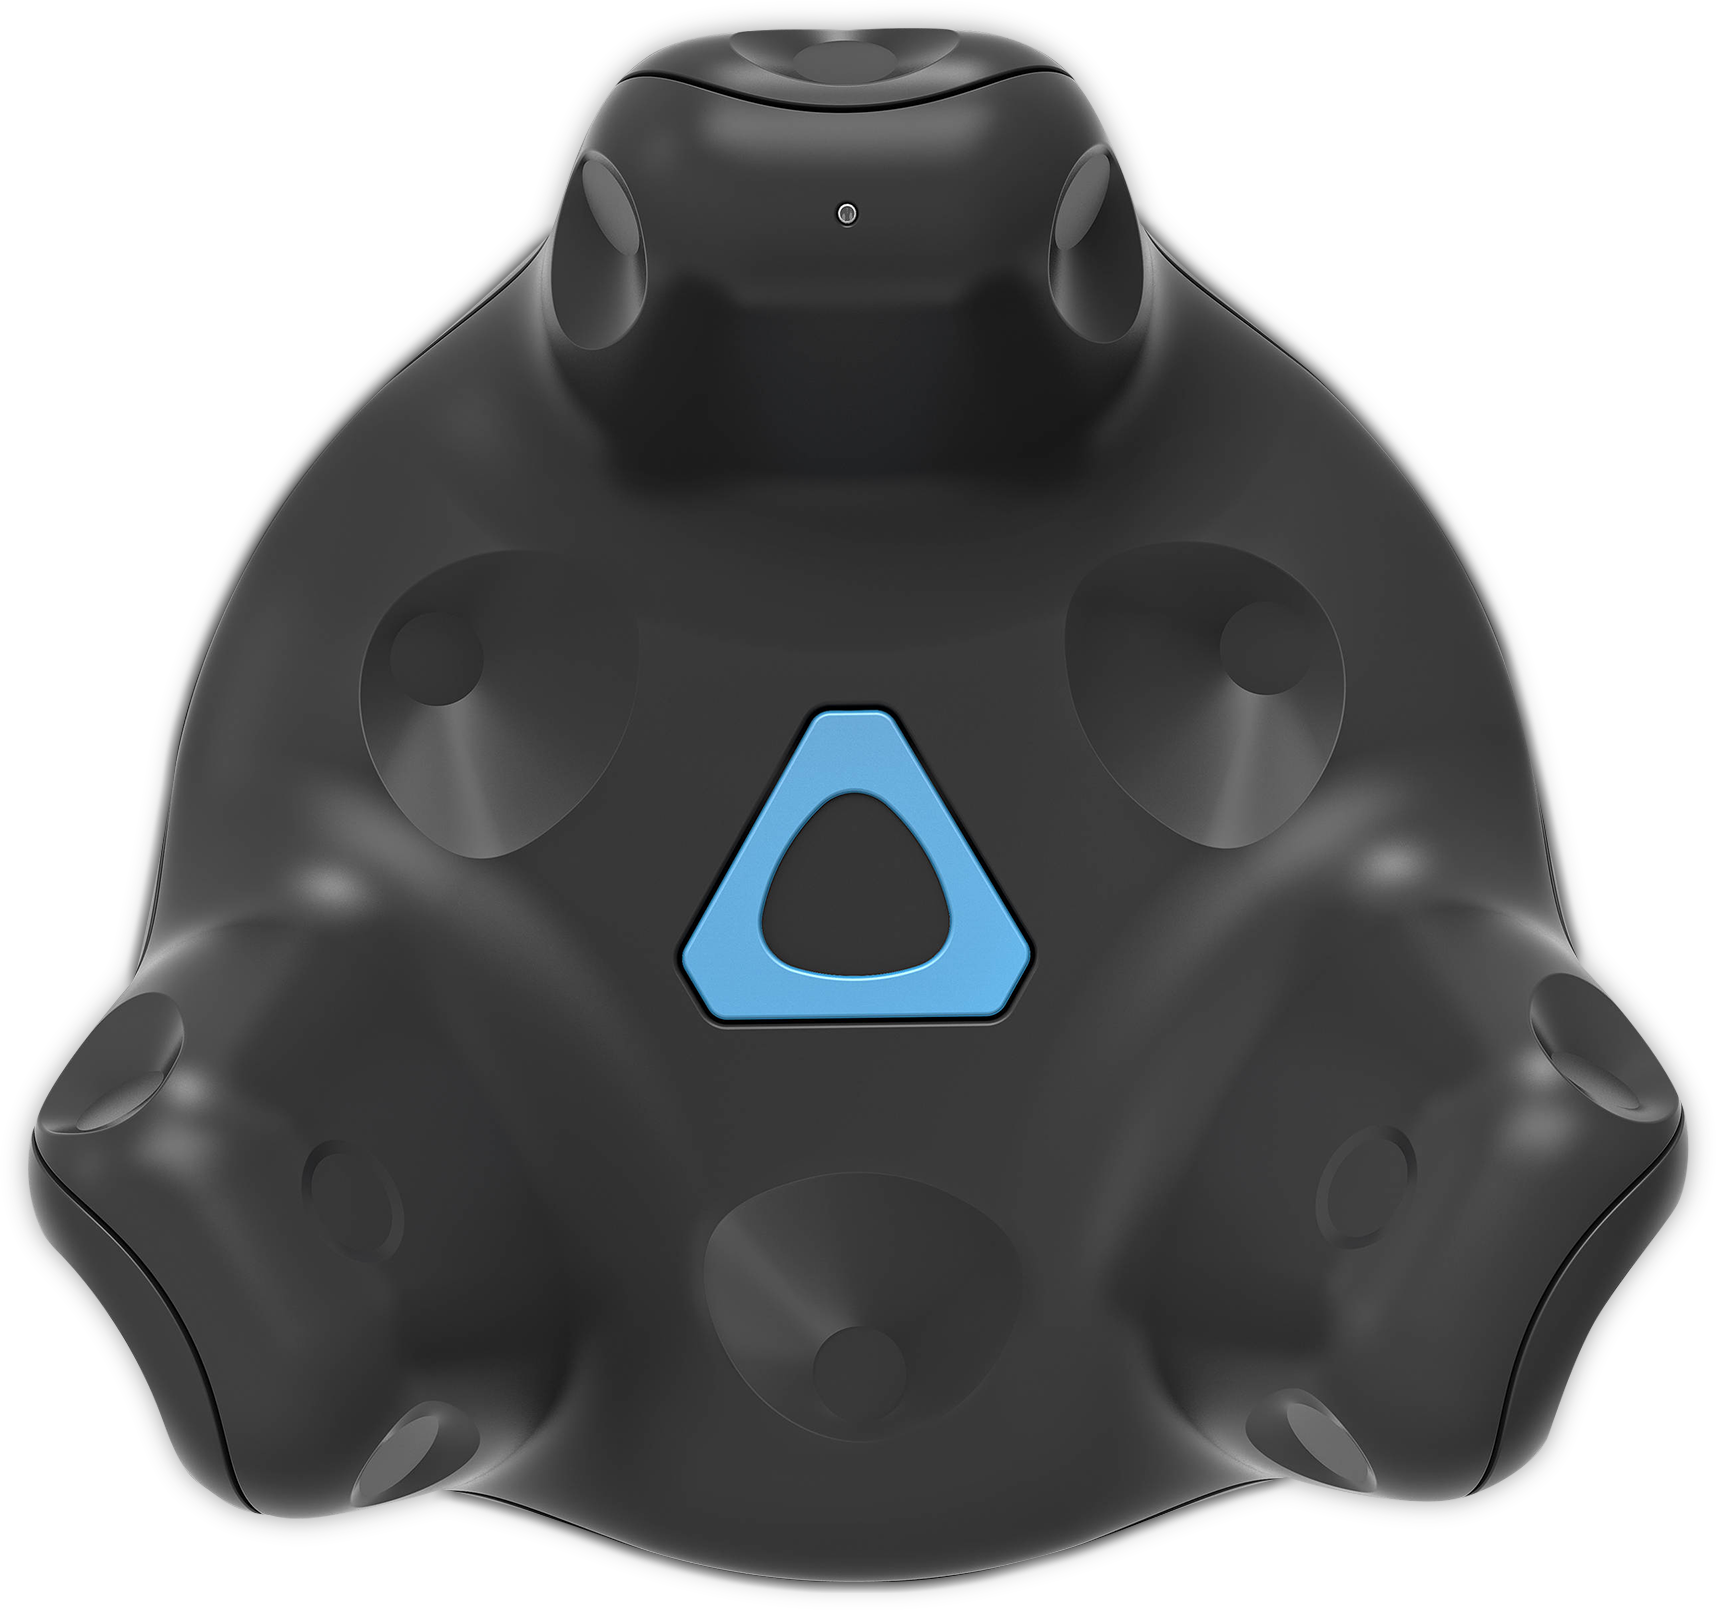 Top view of the HTC Vive Tracker